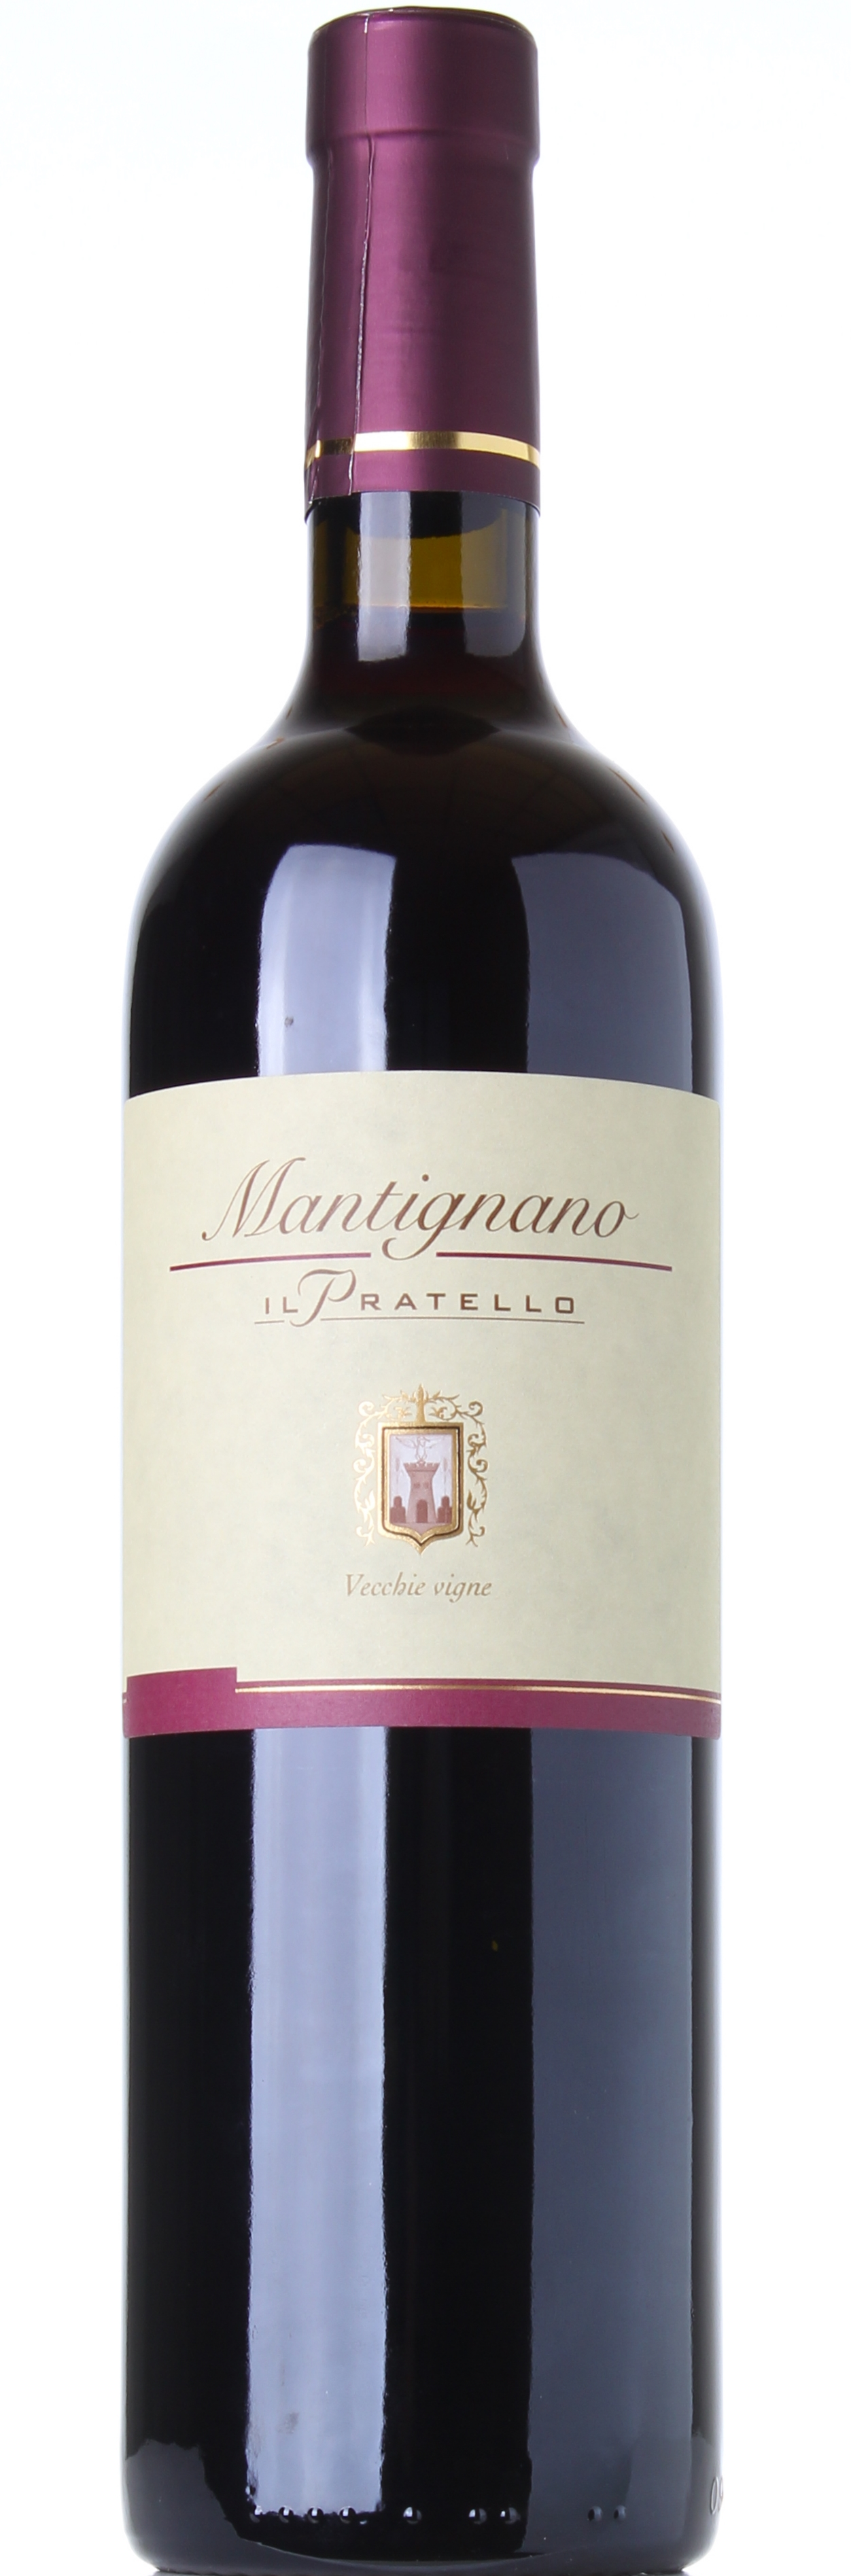 IL PRATELLO MANTIGNANO 2008